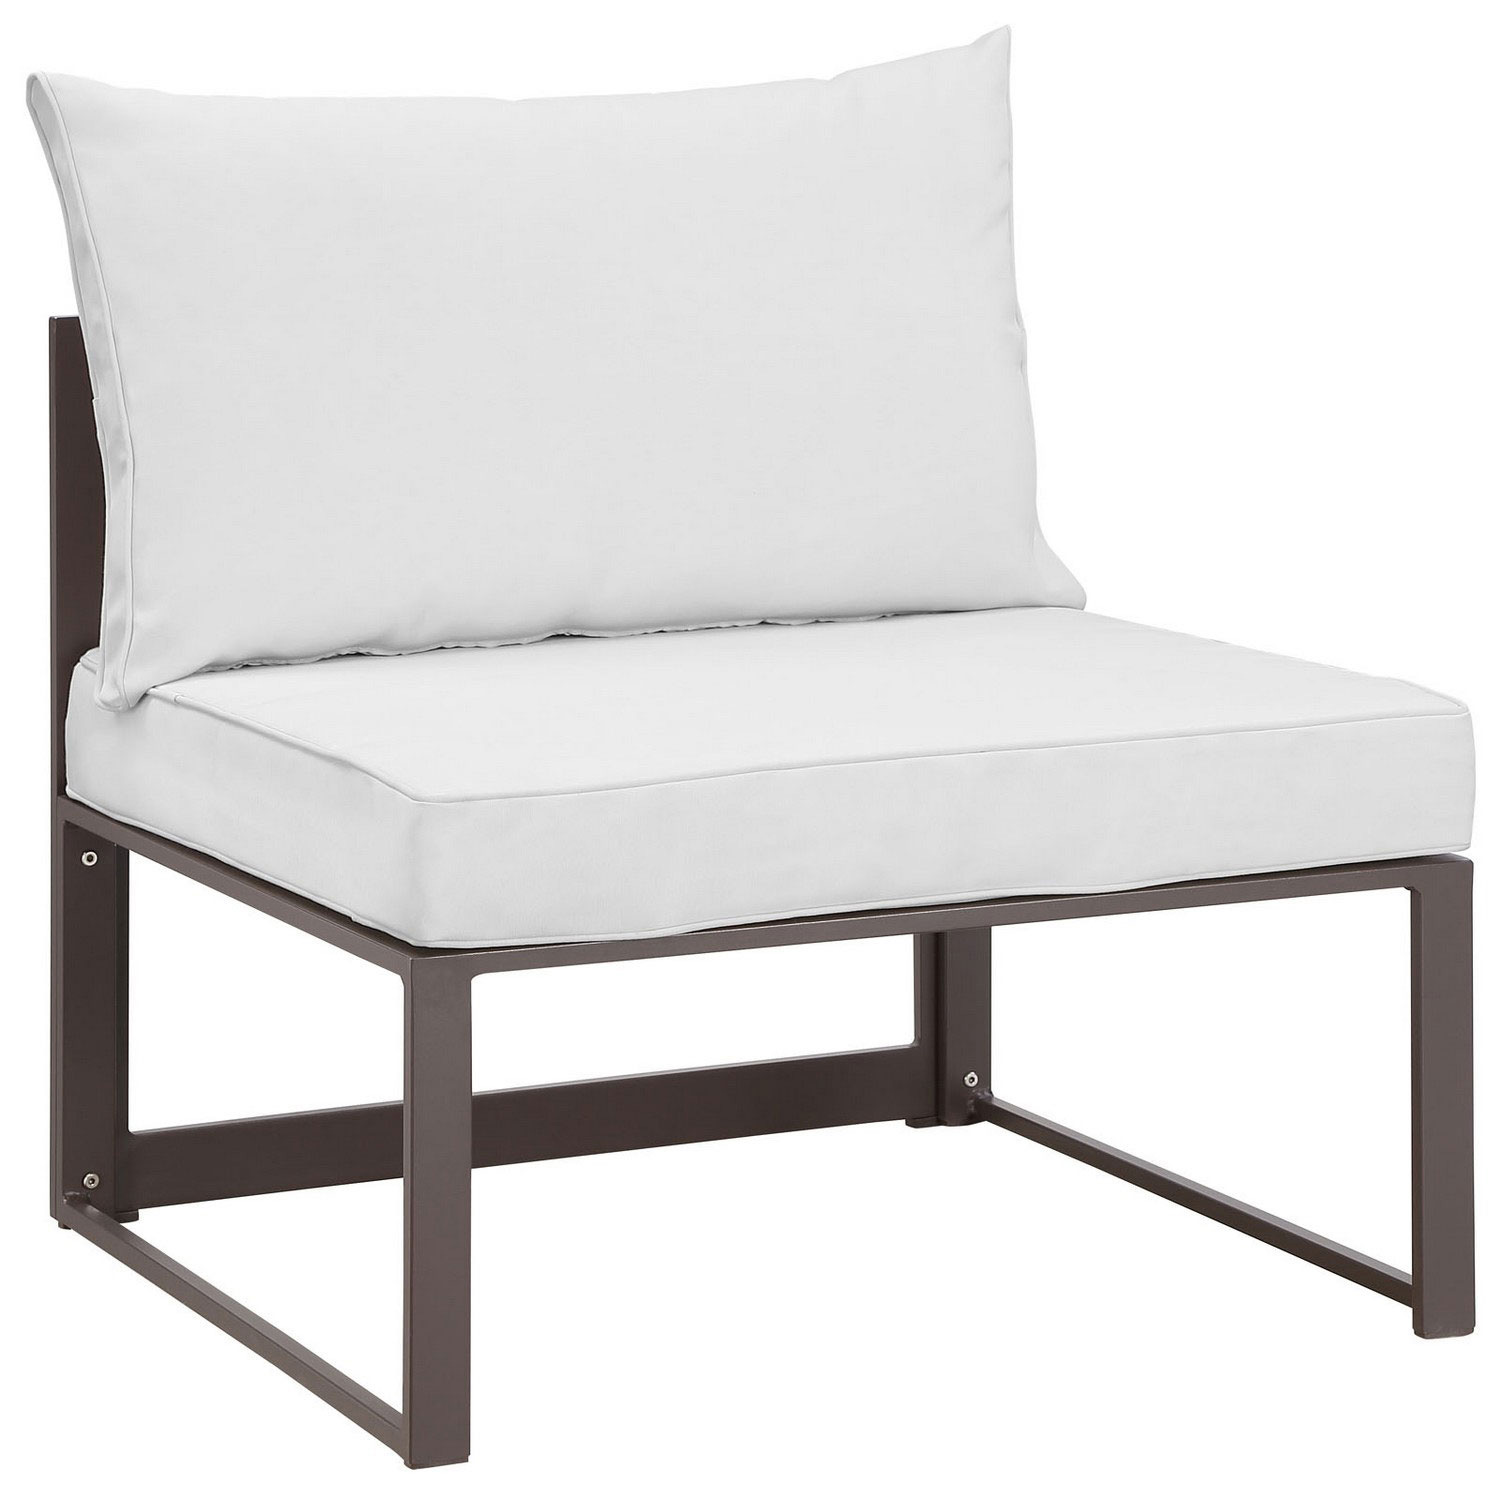 Modway Fortuna 7 Piece Outdoor Patio Sectional Sofa Set - Brown/White